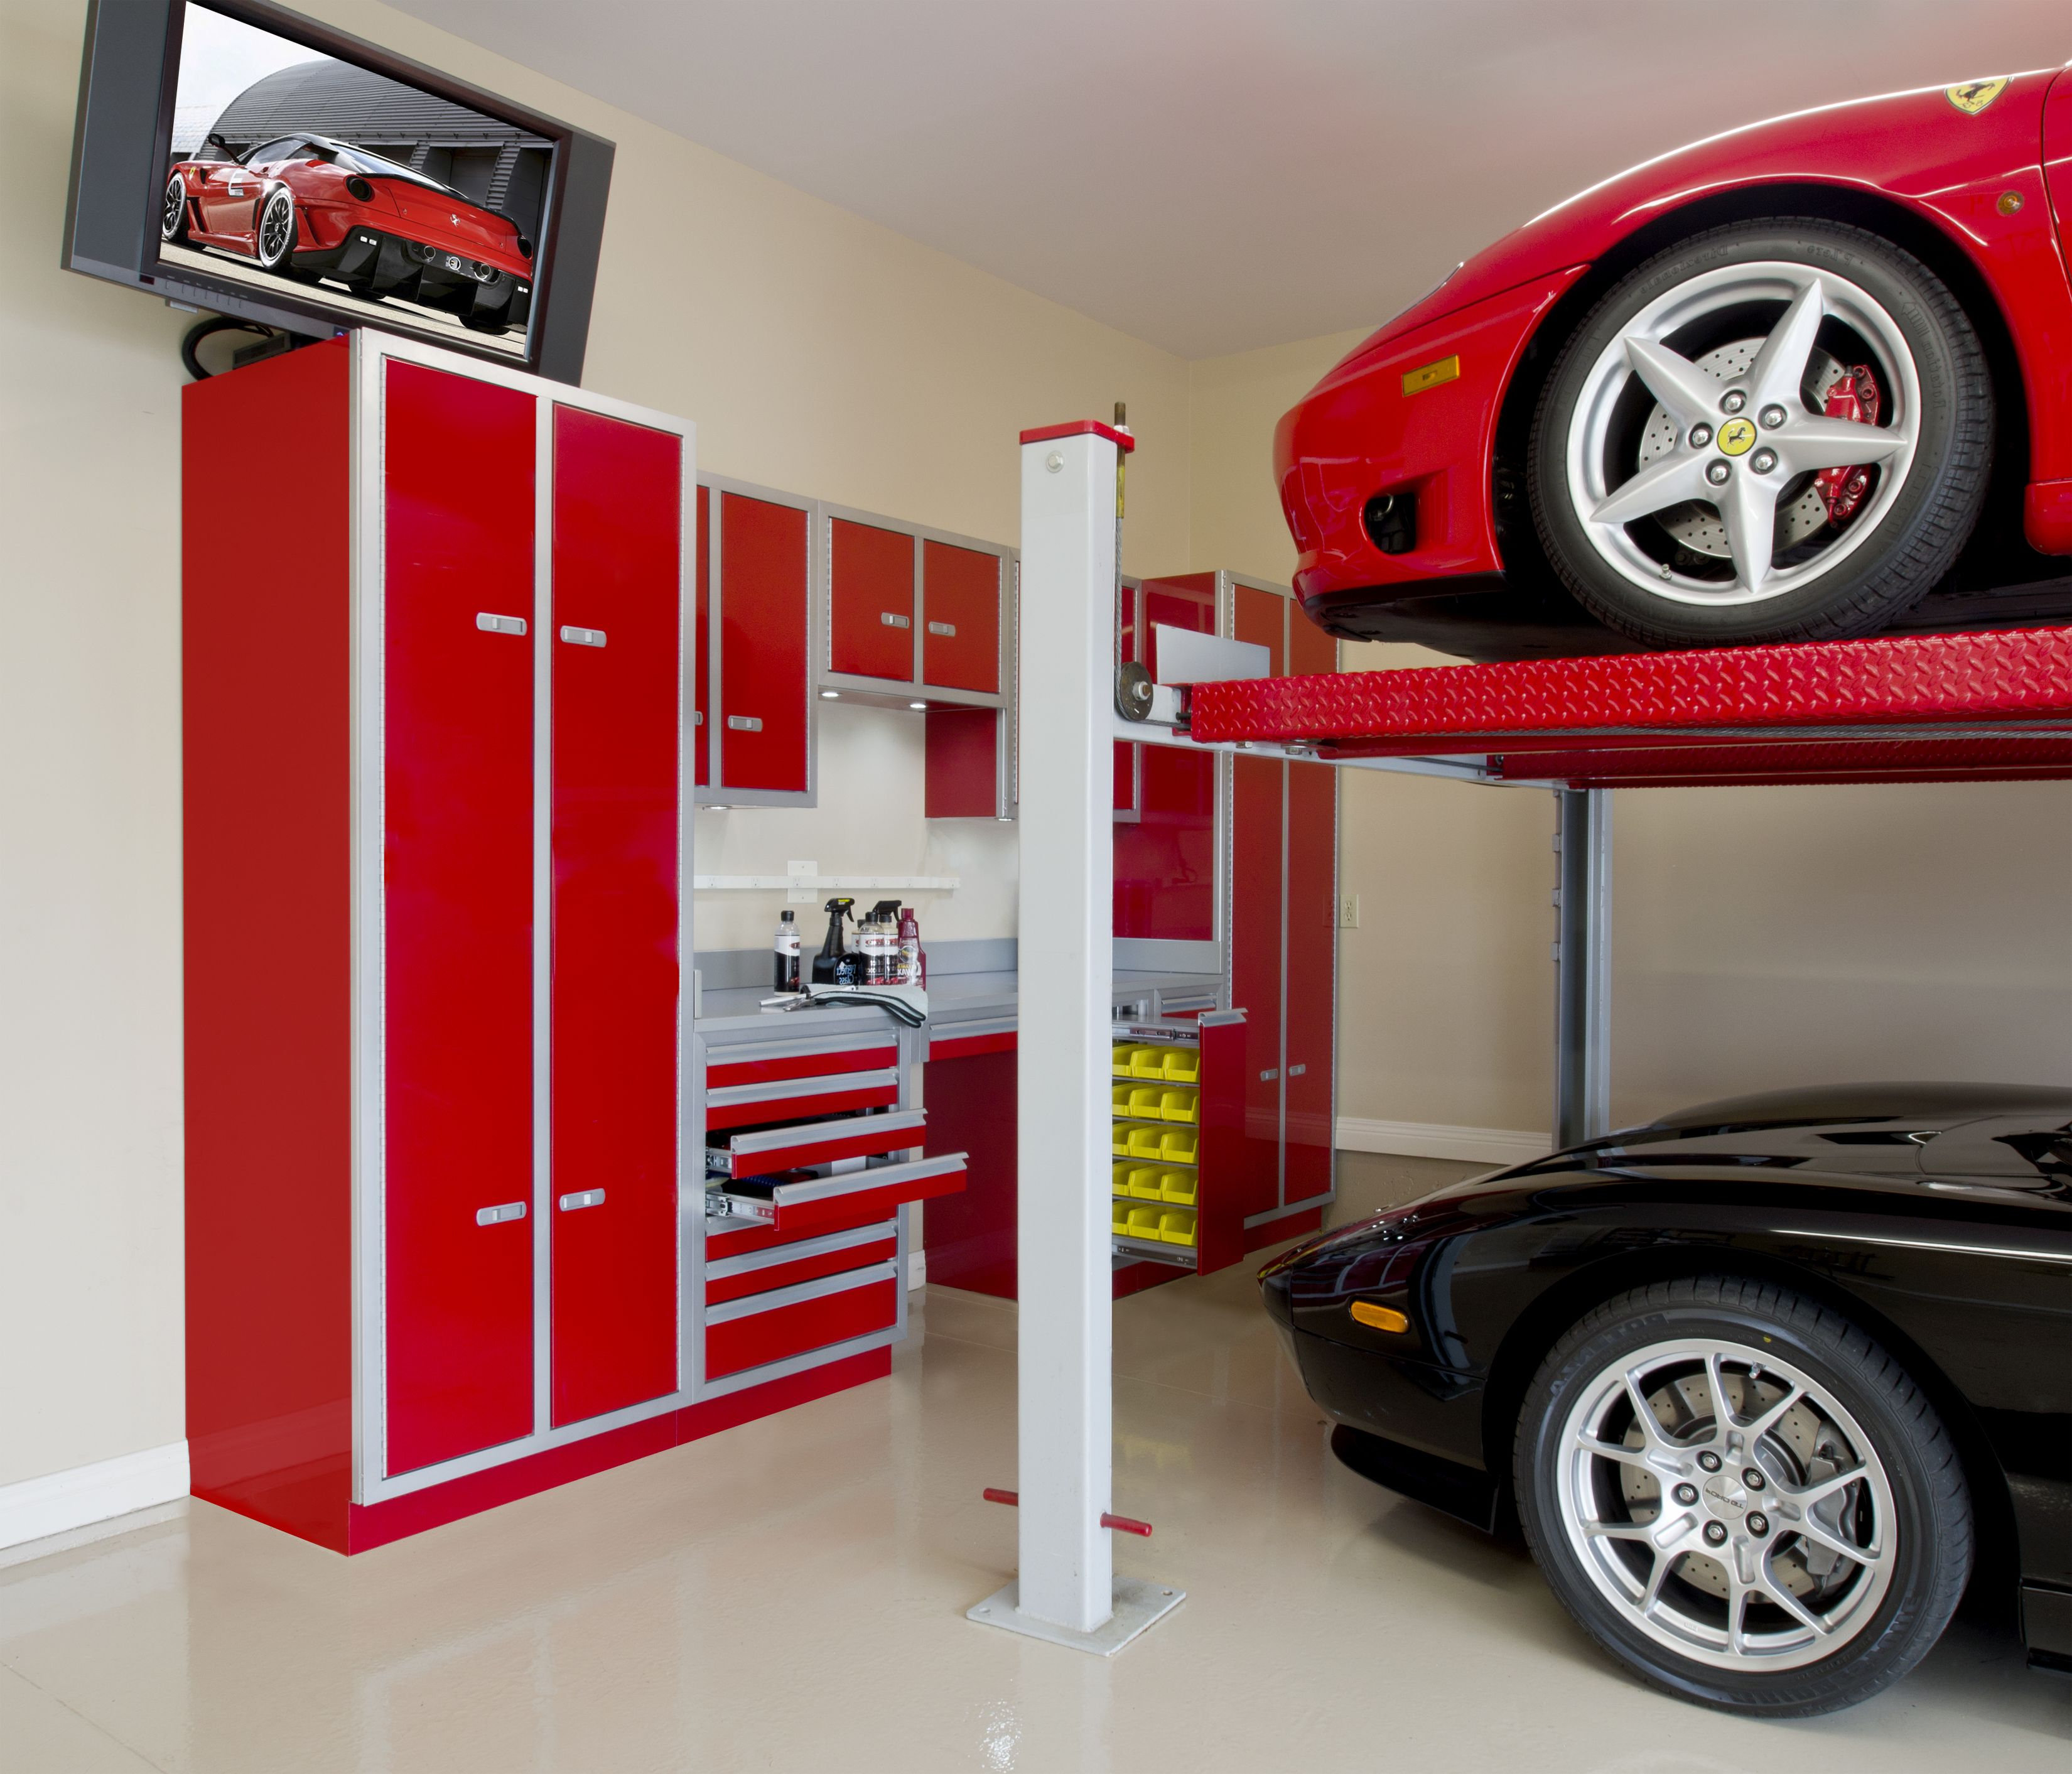 25 Garage Design Ideas For Your Home on Garage Decorating Ideas  id=14015